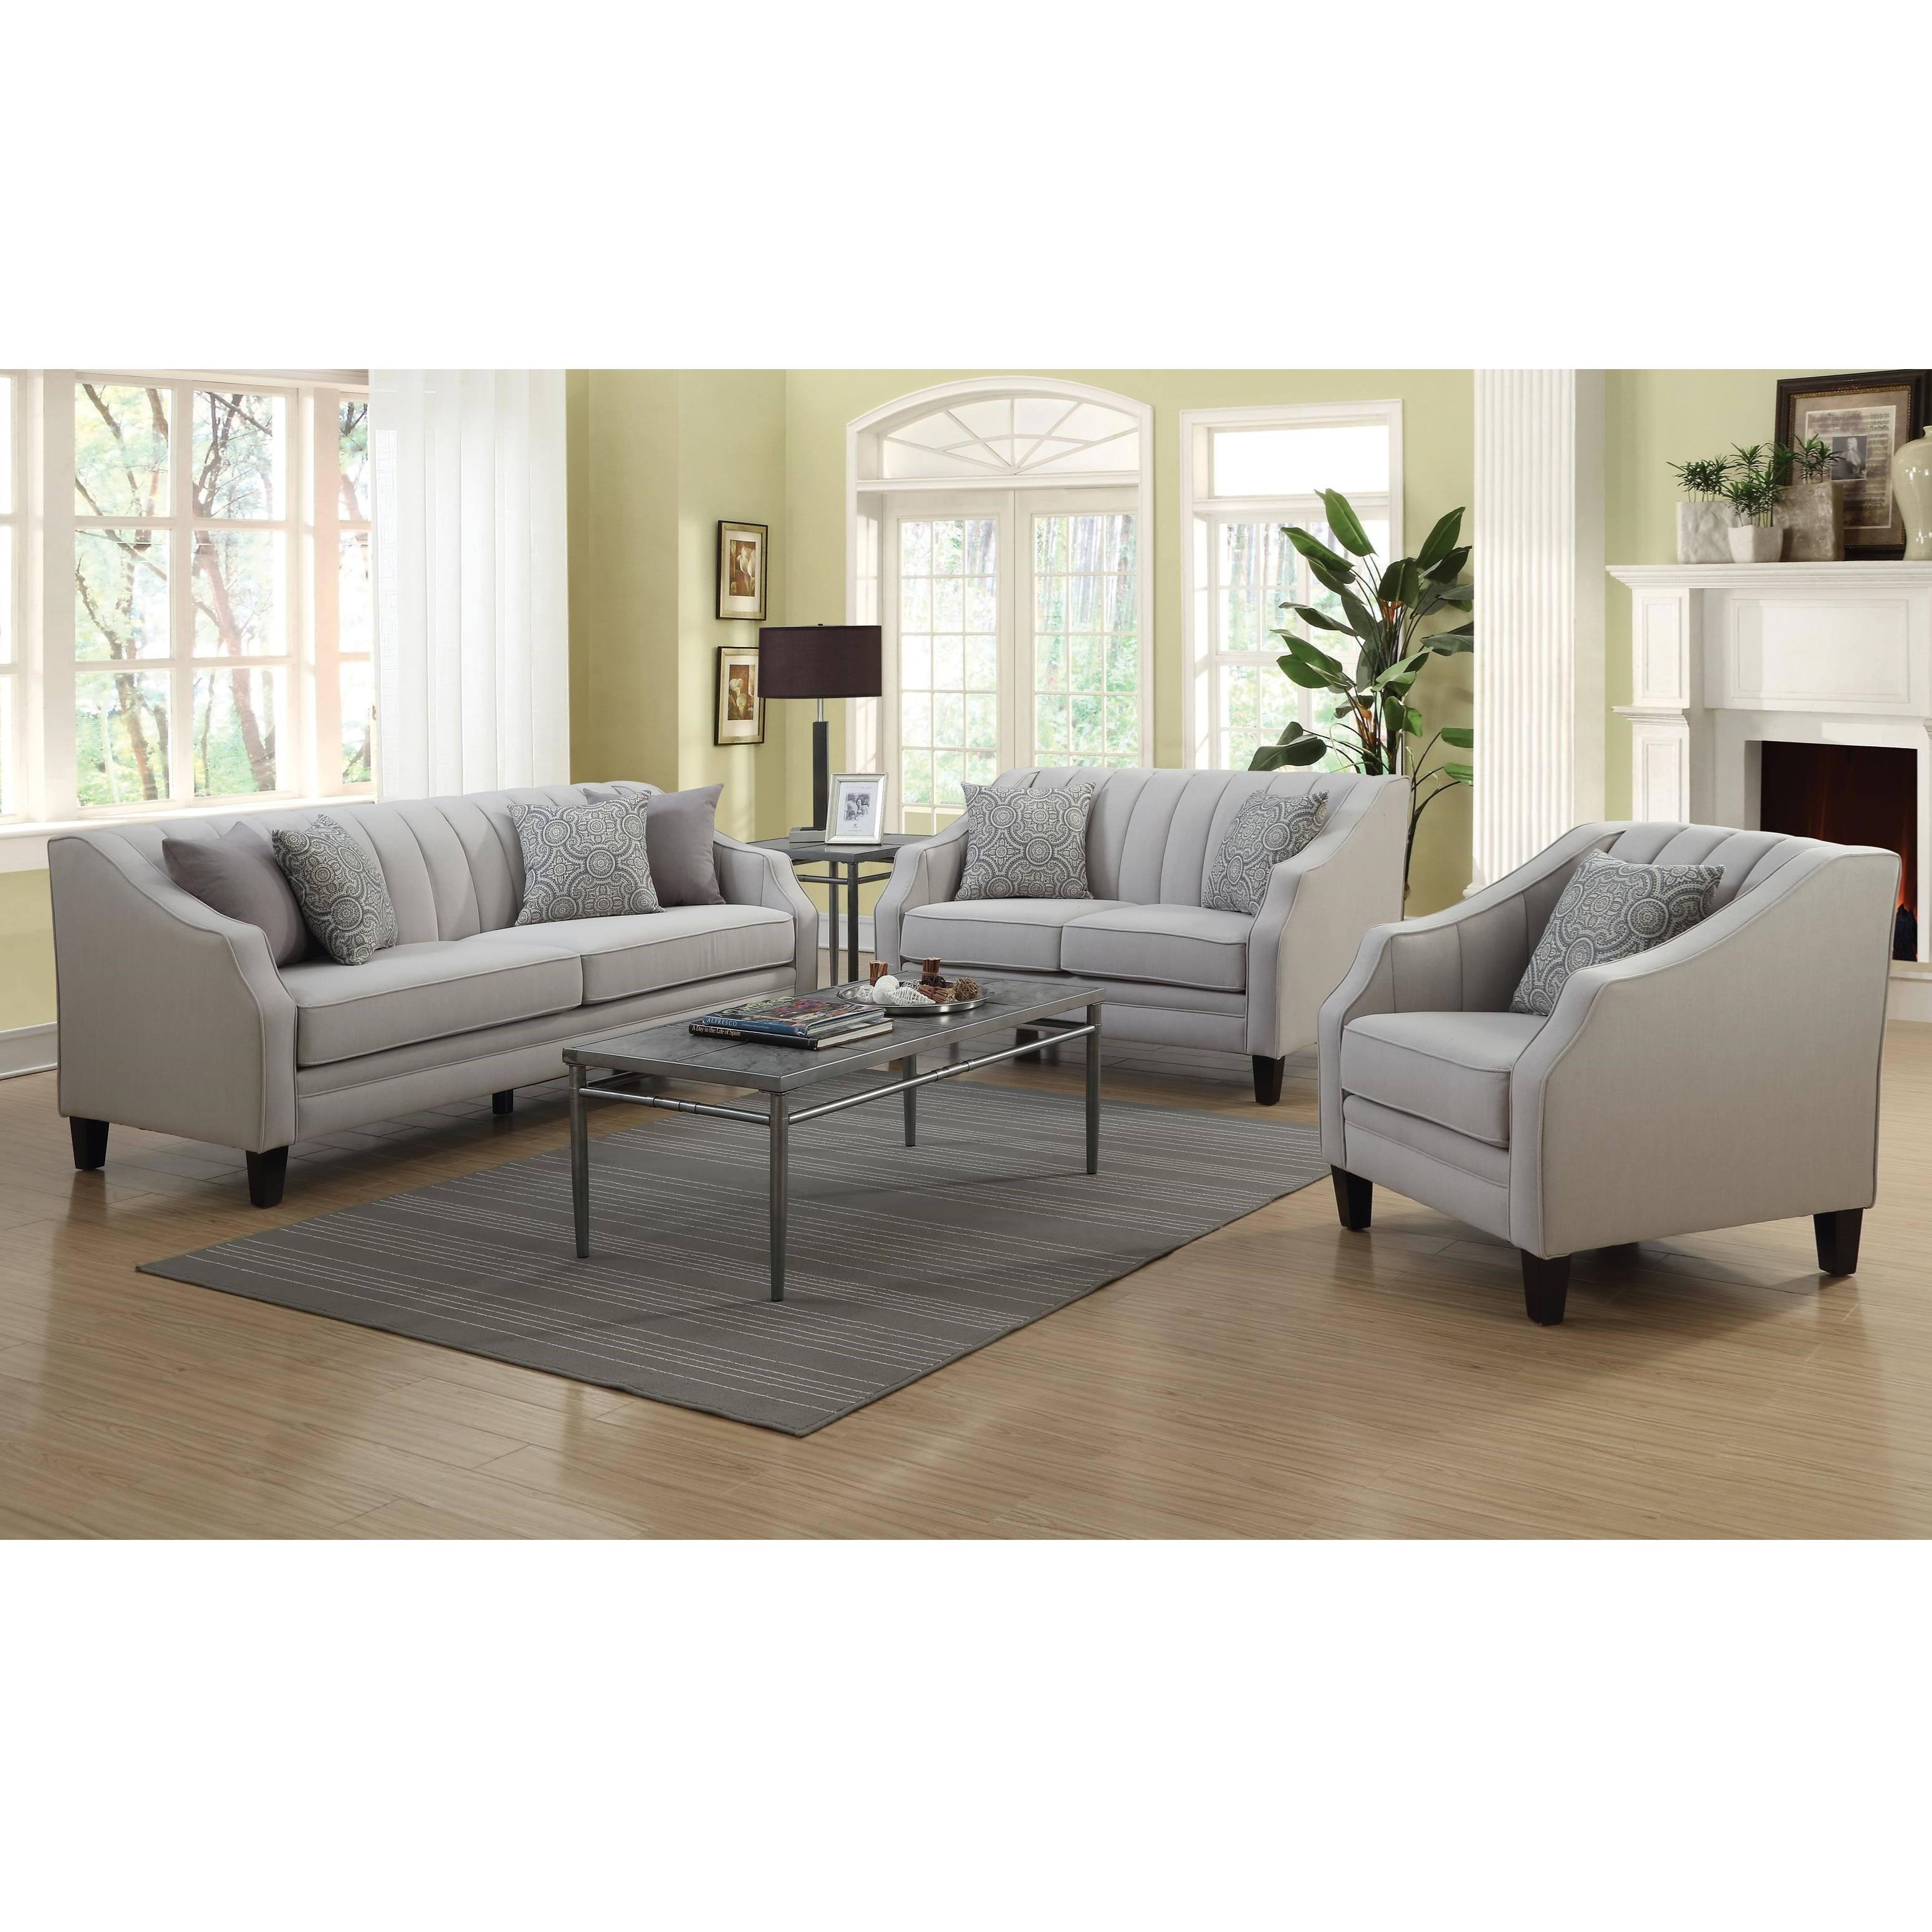 Coaster loxley stationary living room group value city for Living room furniture groups